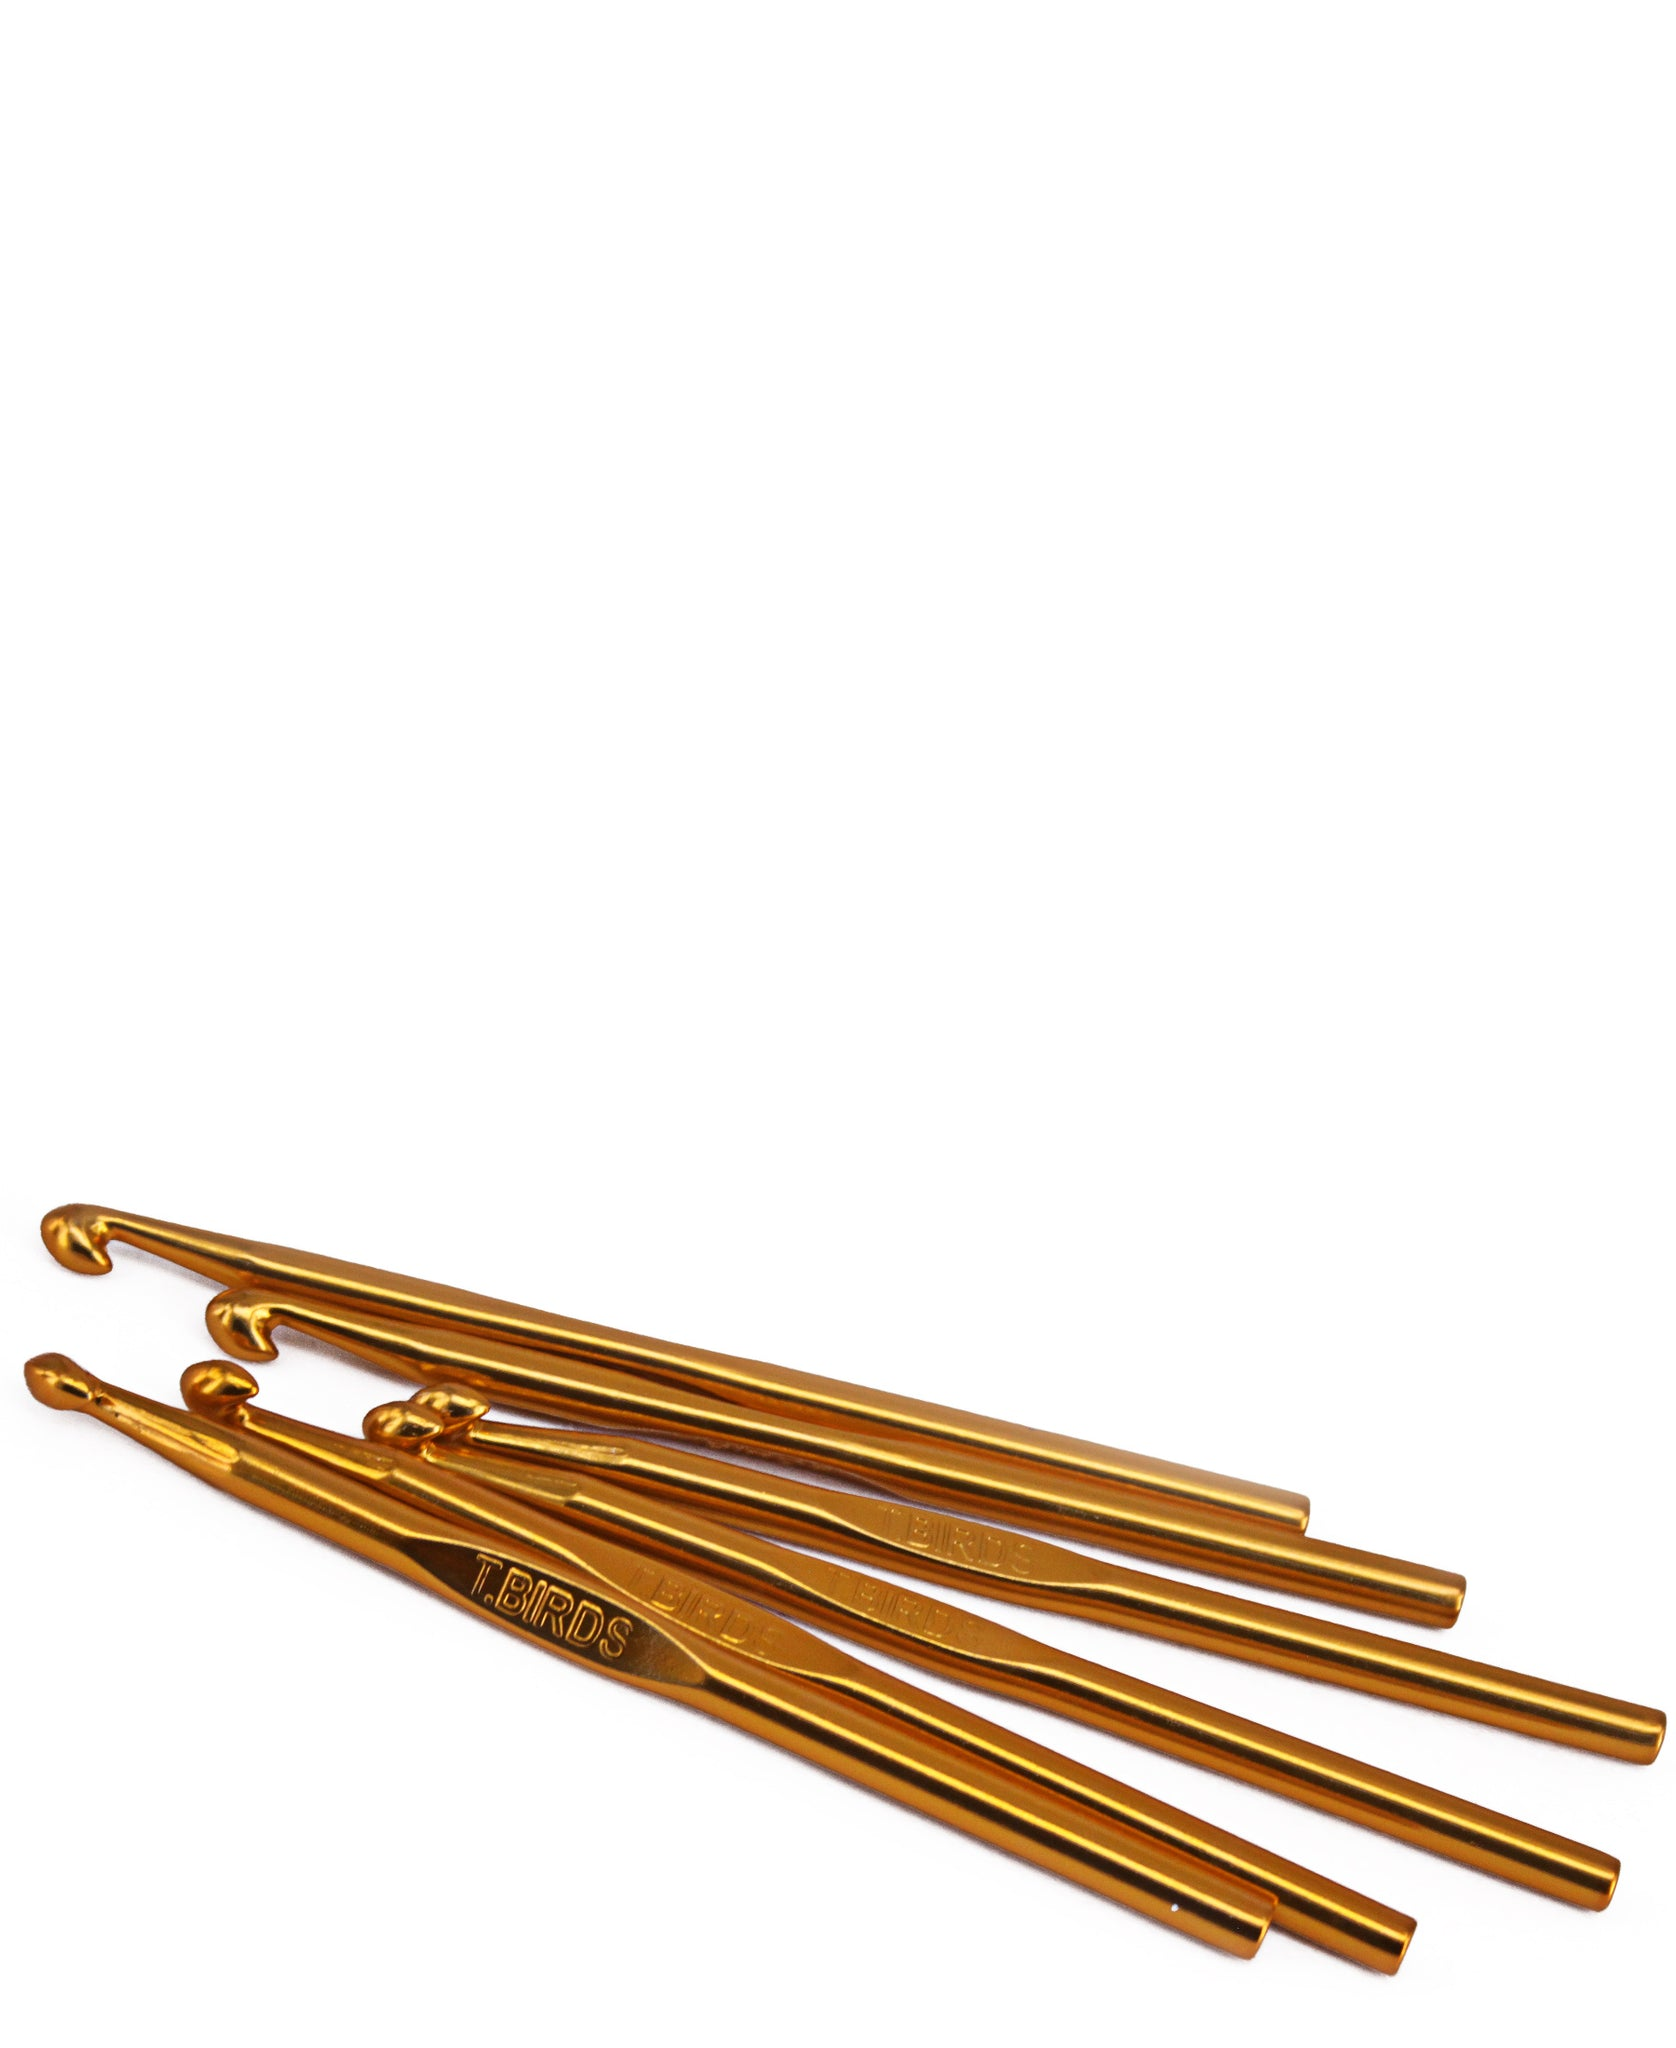 Single Aluminium Crochet Hook - Gold